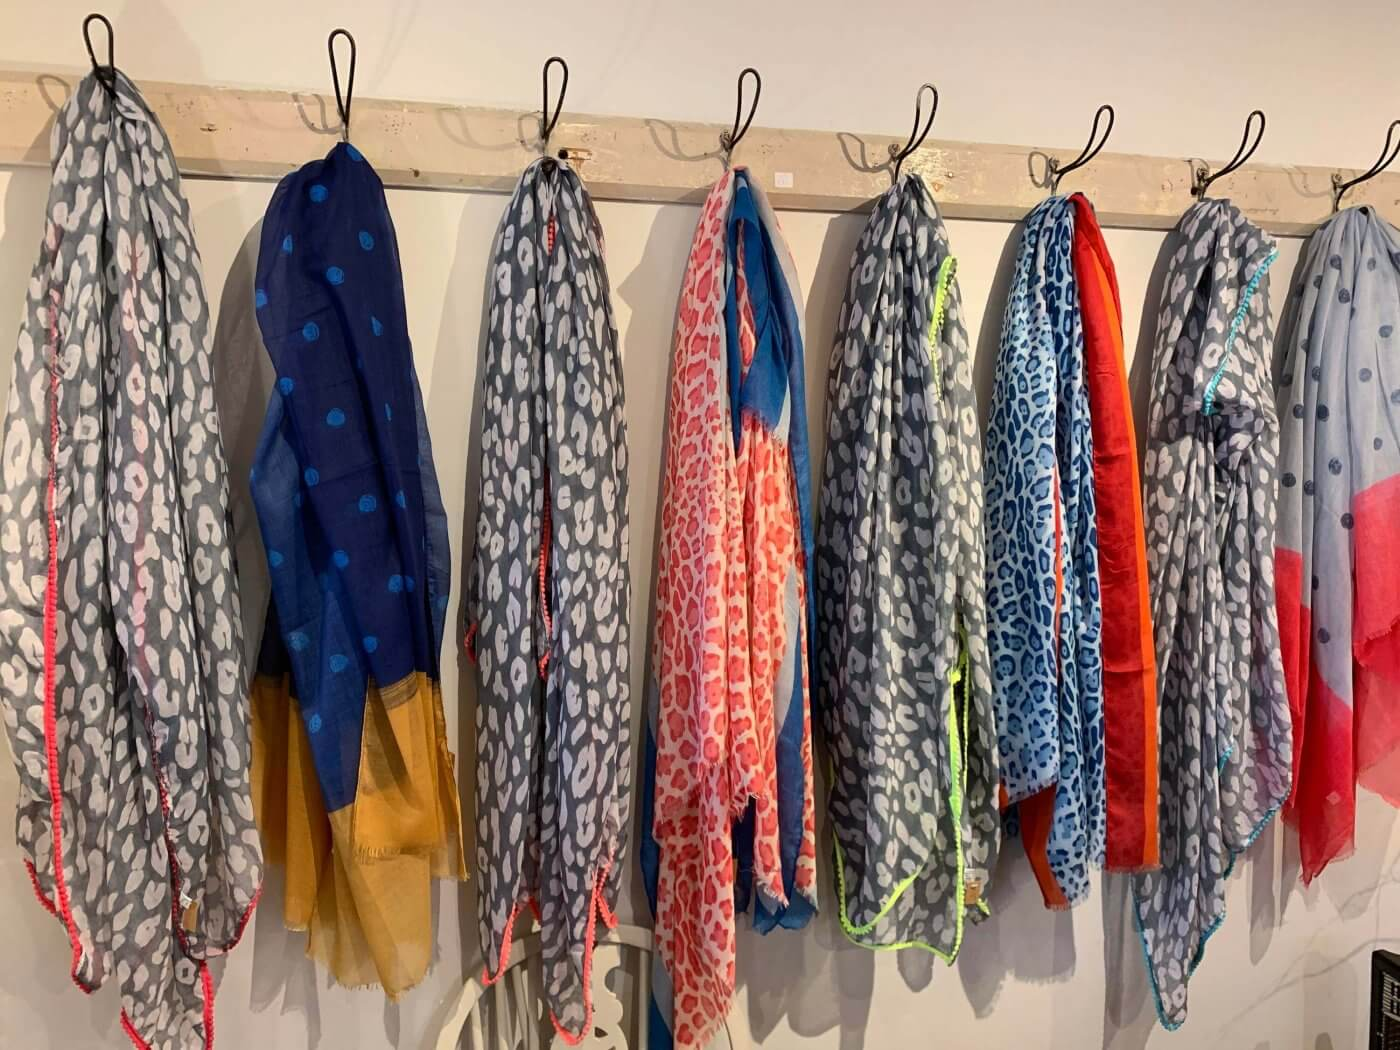 Hanging Scarfs | The Mustcard